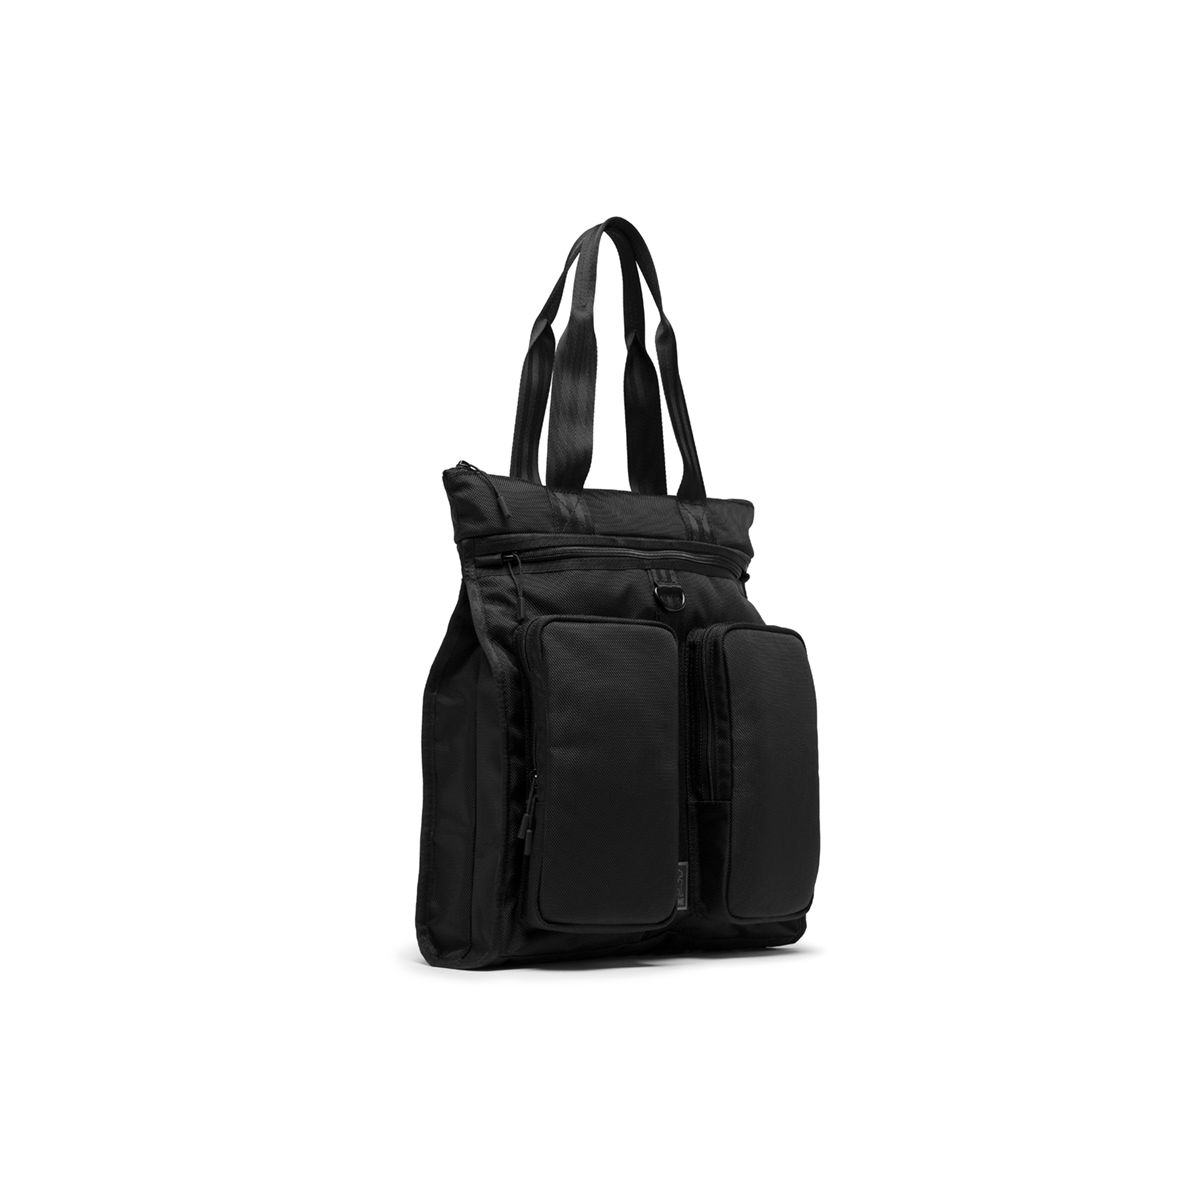 MXD PACE TOTE BAG